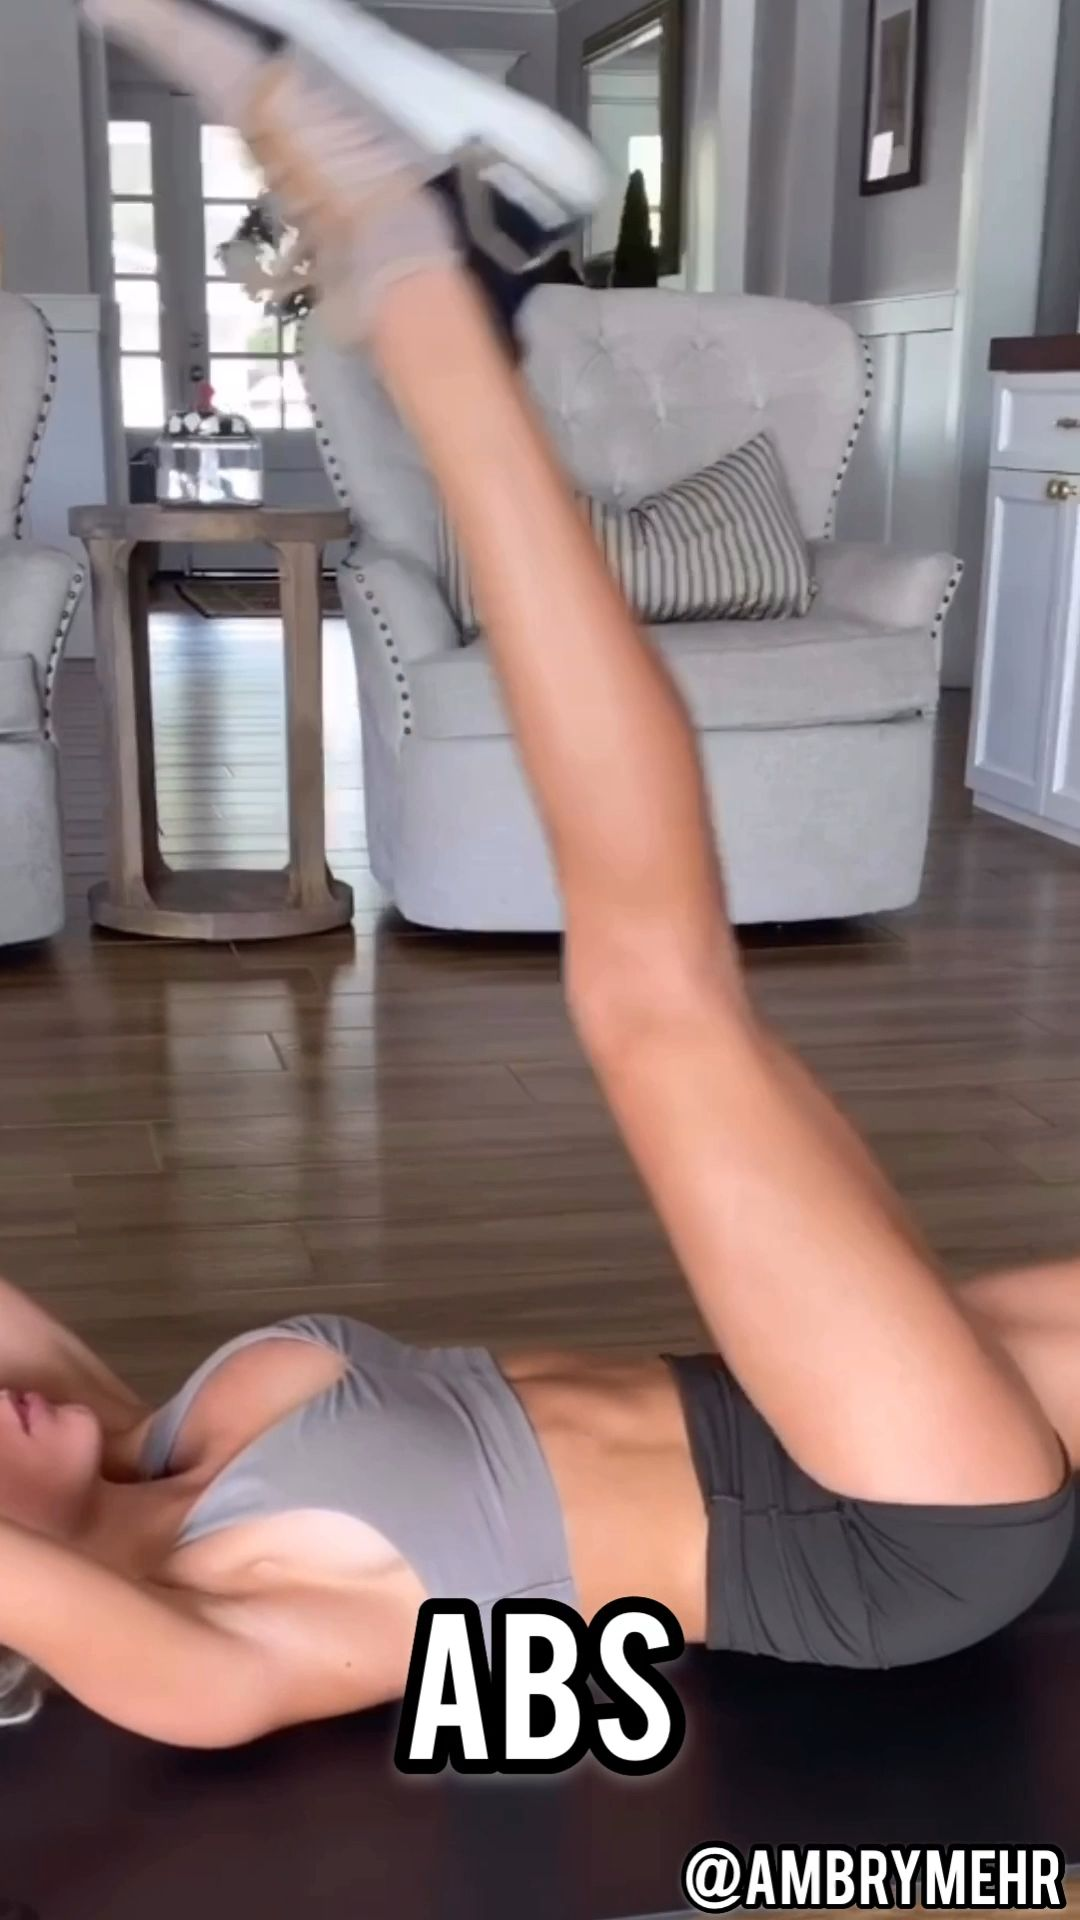 At Home Abs- Follow @ambrymehr IG for daily workouts!